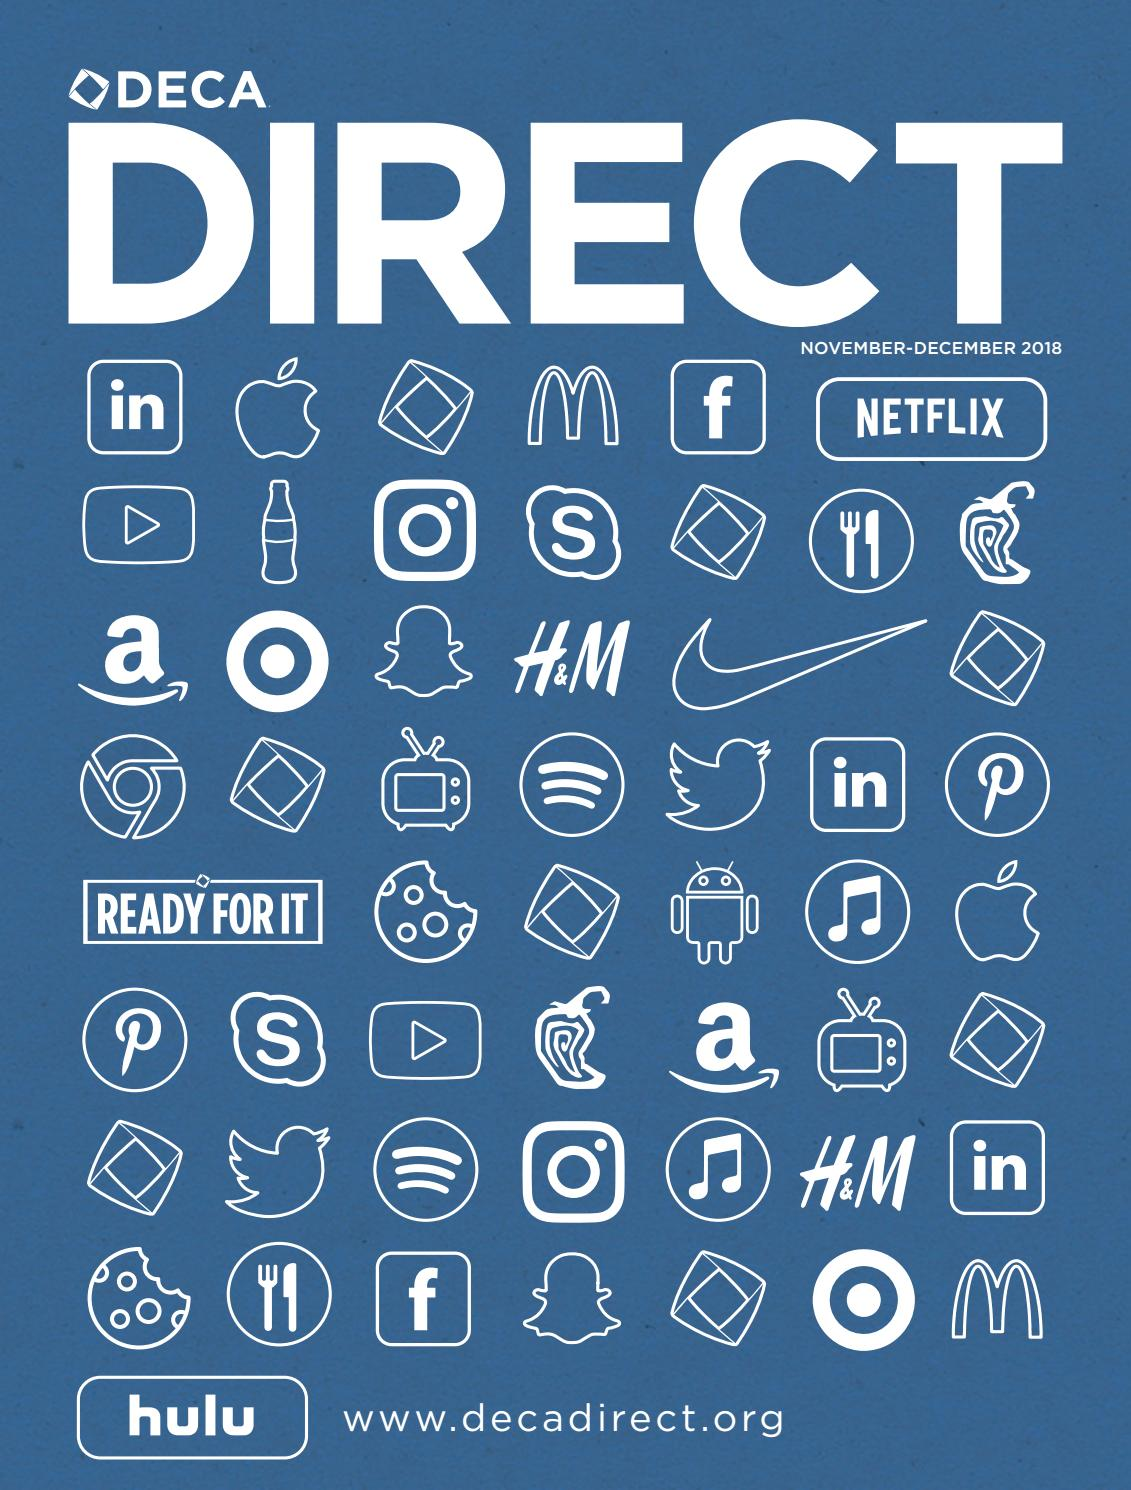 DECA Direct | November-December 2018 by DECA Inc  - issuu